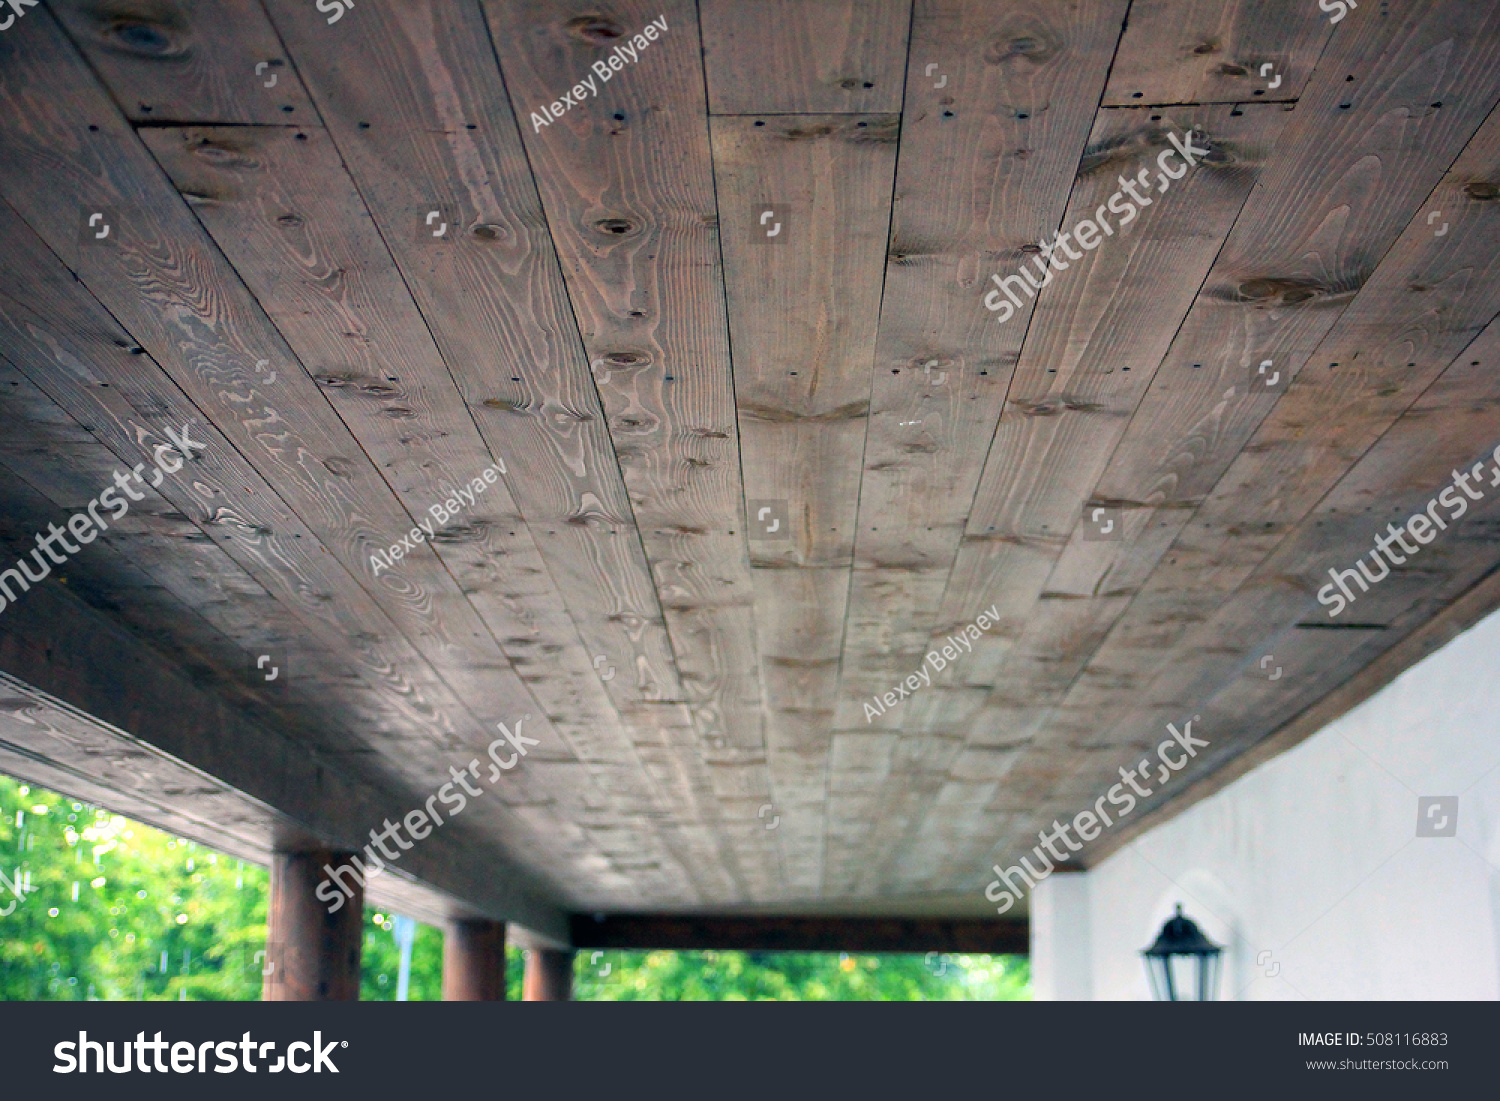 luxury inspirational ceilings install ideas a planked hgtv to with design rustic cabinets wood kitchen photo how planks interior ceiling of gallery designs